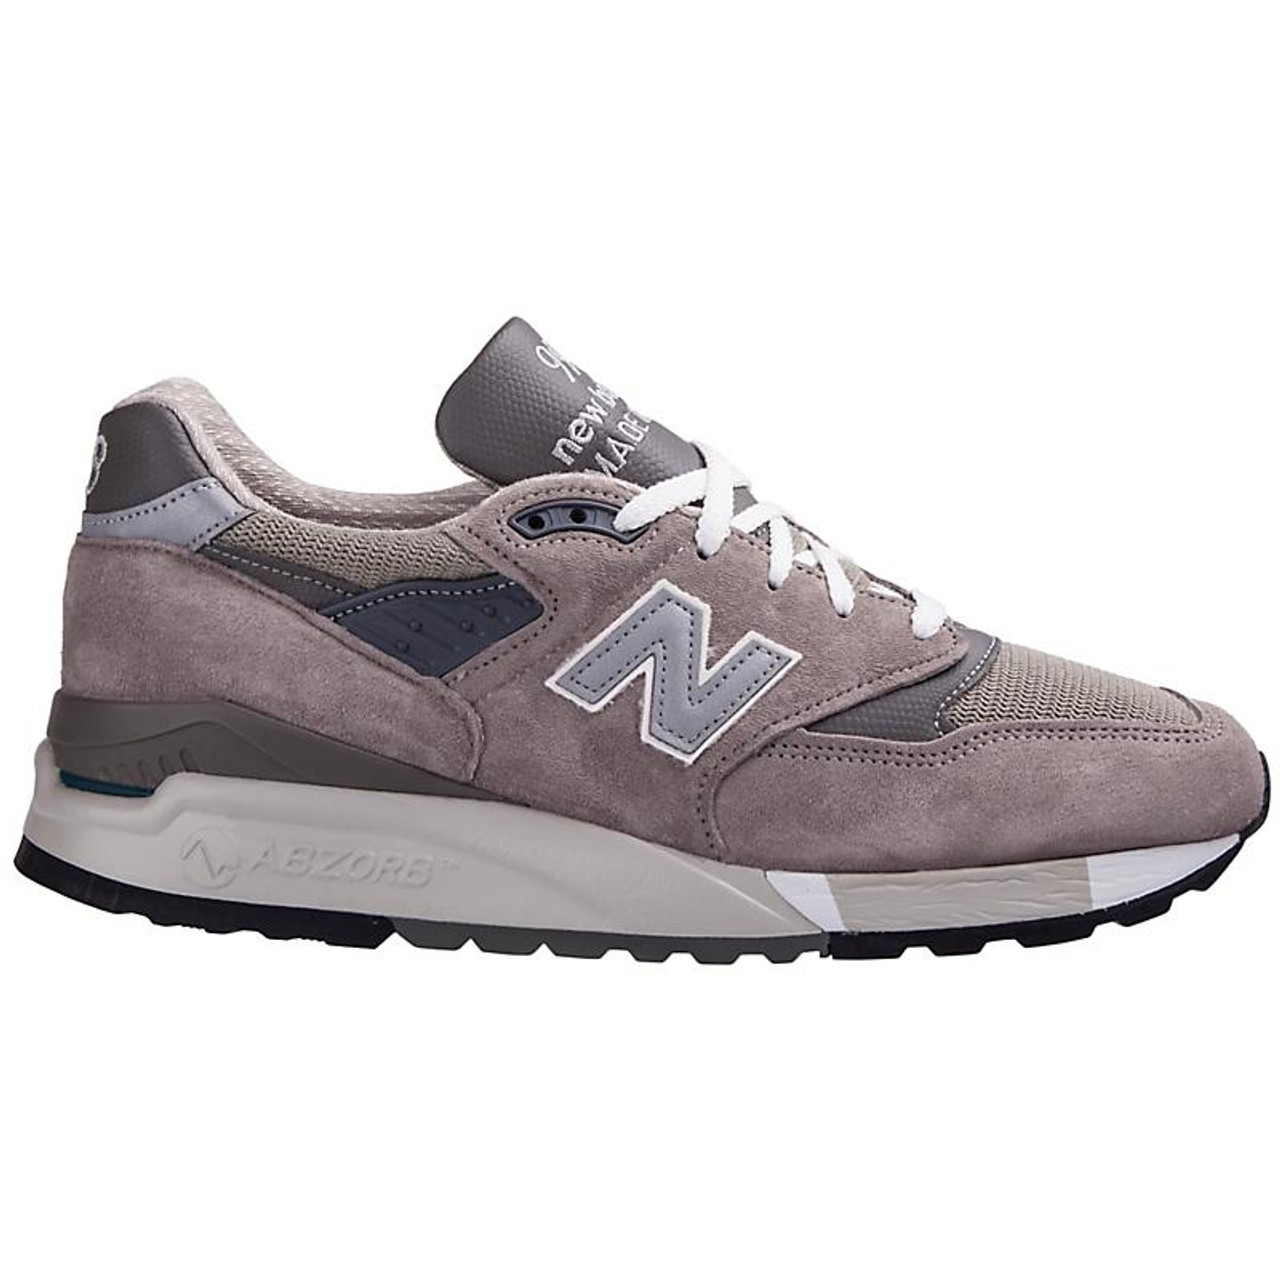 982ae0a6c Men s New Balance M 998 GR Classic Running Shoe